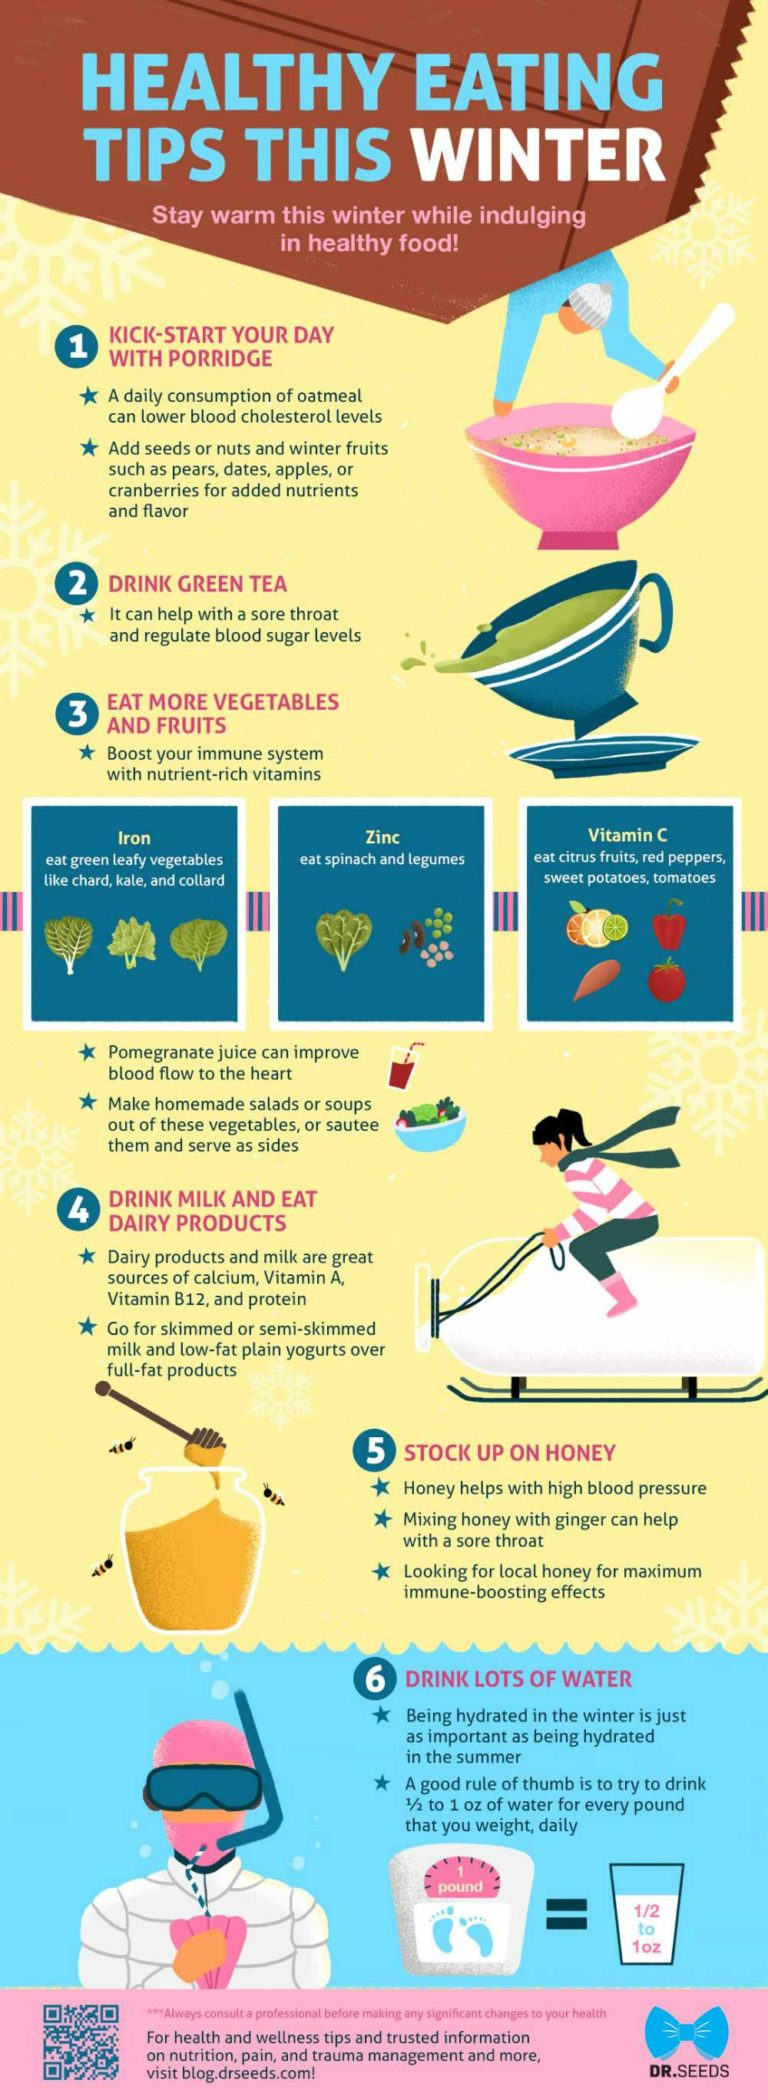 9 Healthy Eating Tips This Winter #infographic #Eating healthy #Tips #Winter #Eating Tips